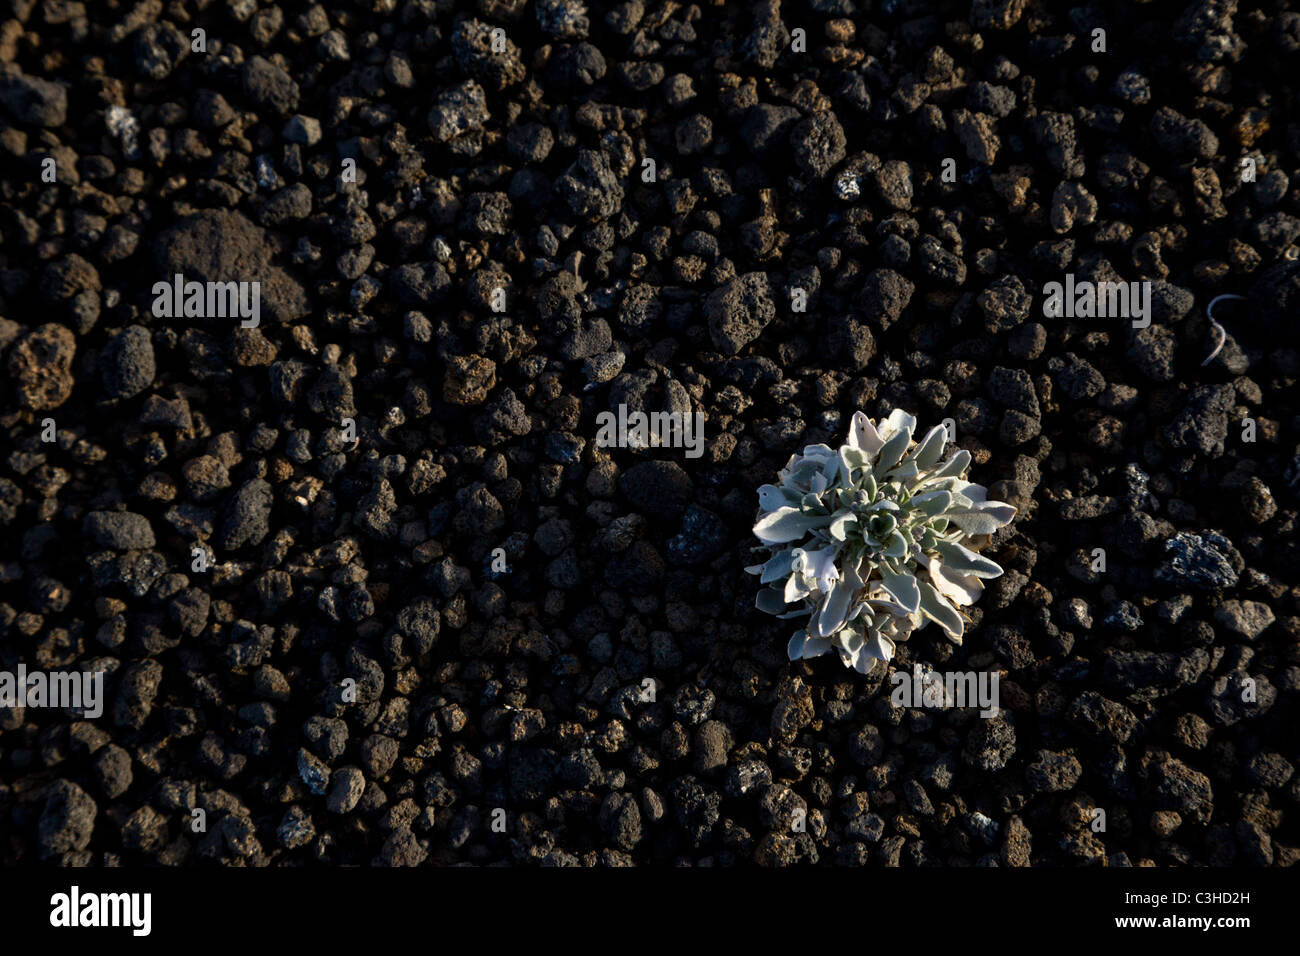 Small plant growing in the Cinder Hills of Sunset Crater Volcano National Monument, Arizona, USA. - Stock Image